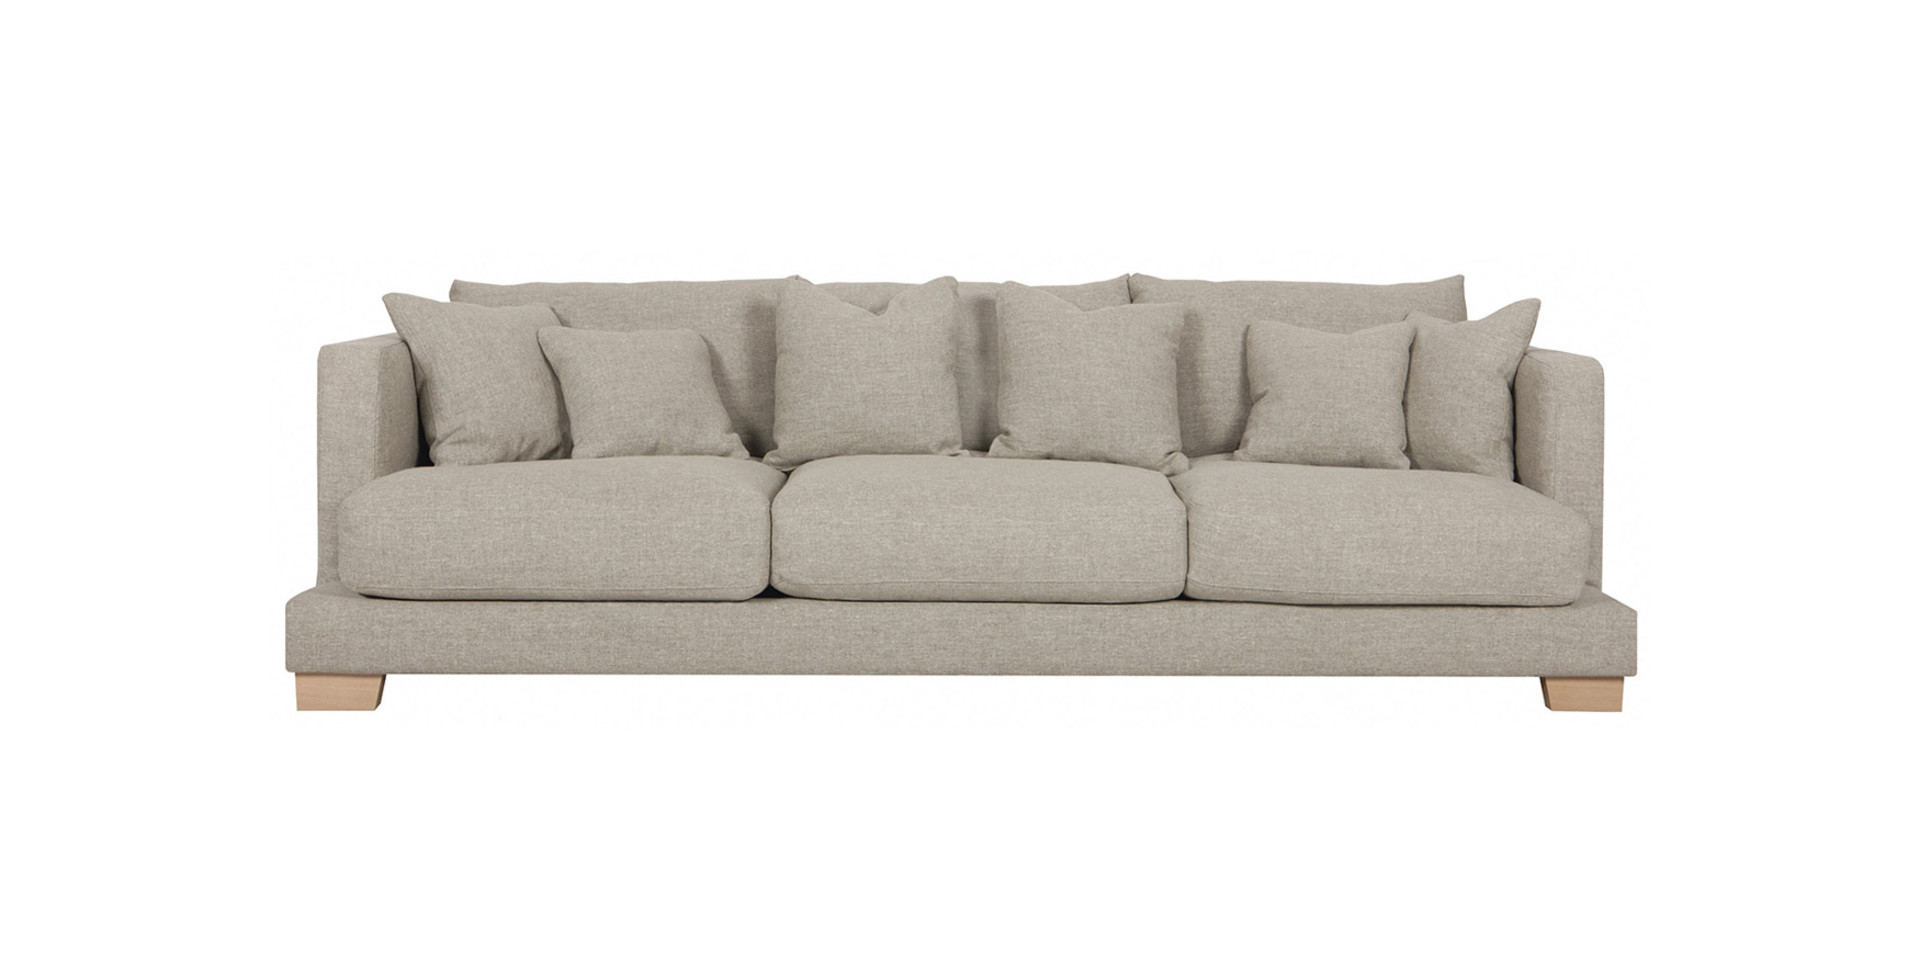 sofa COLORADO 3seater | od 6300 zł |10-12 tyg.